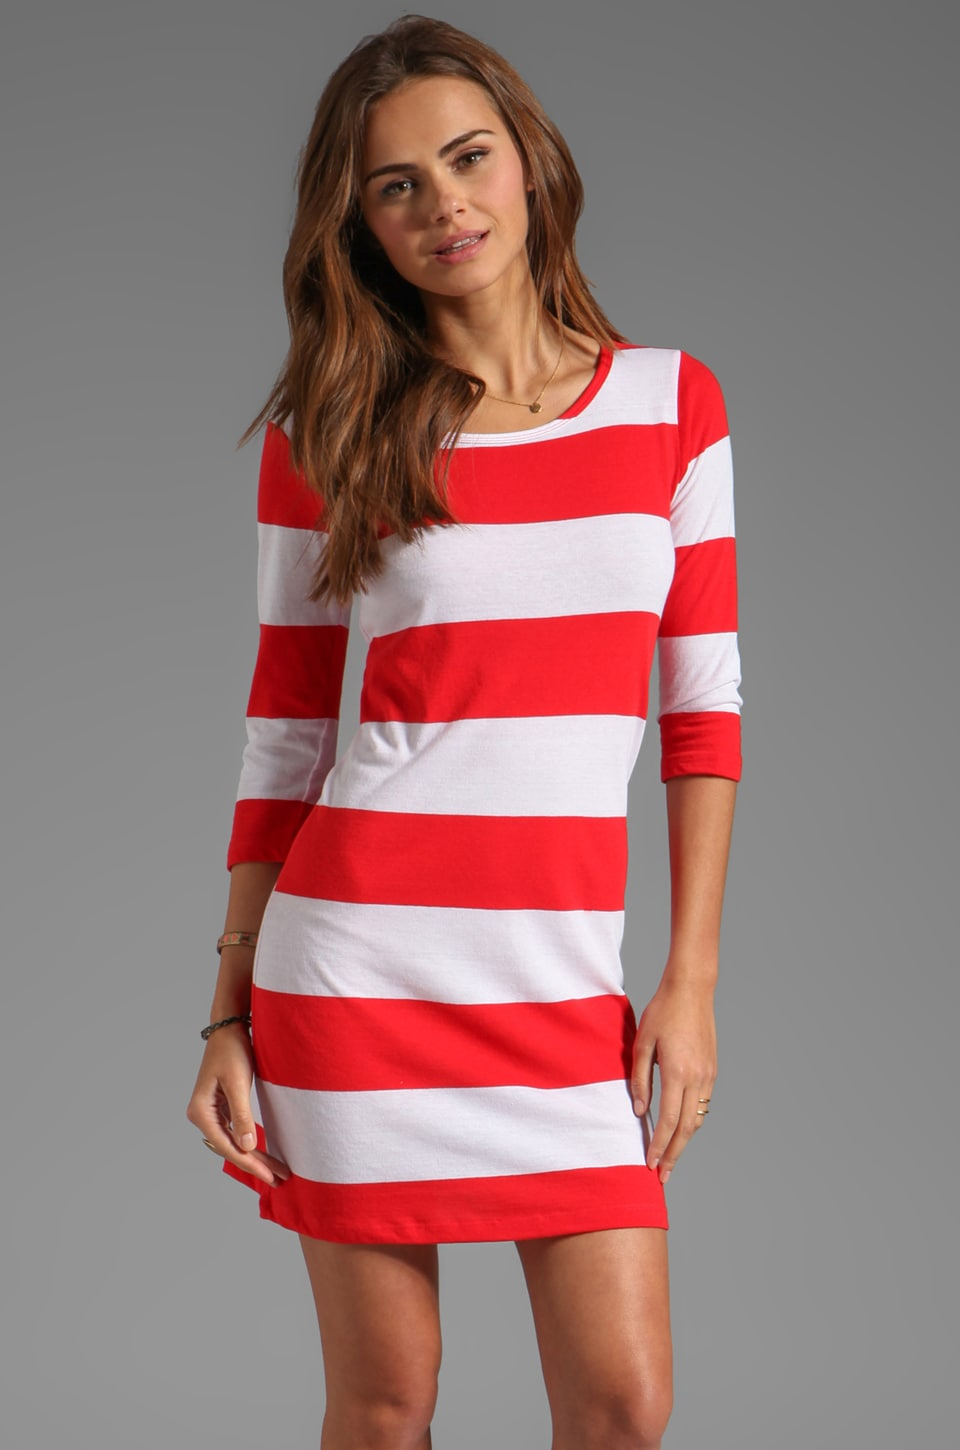 Market Wide Stripe Adriana Dress in Red/White